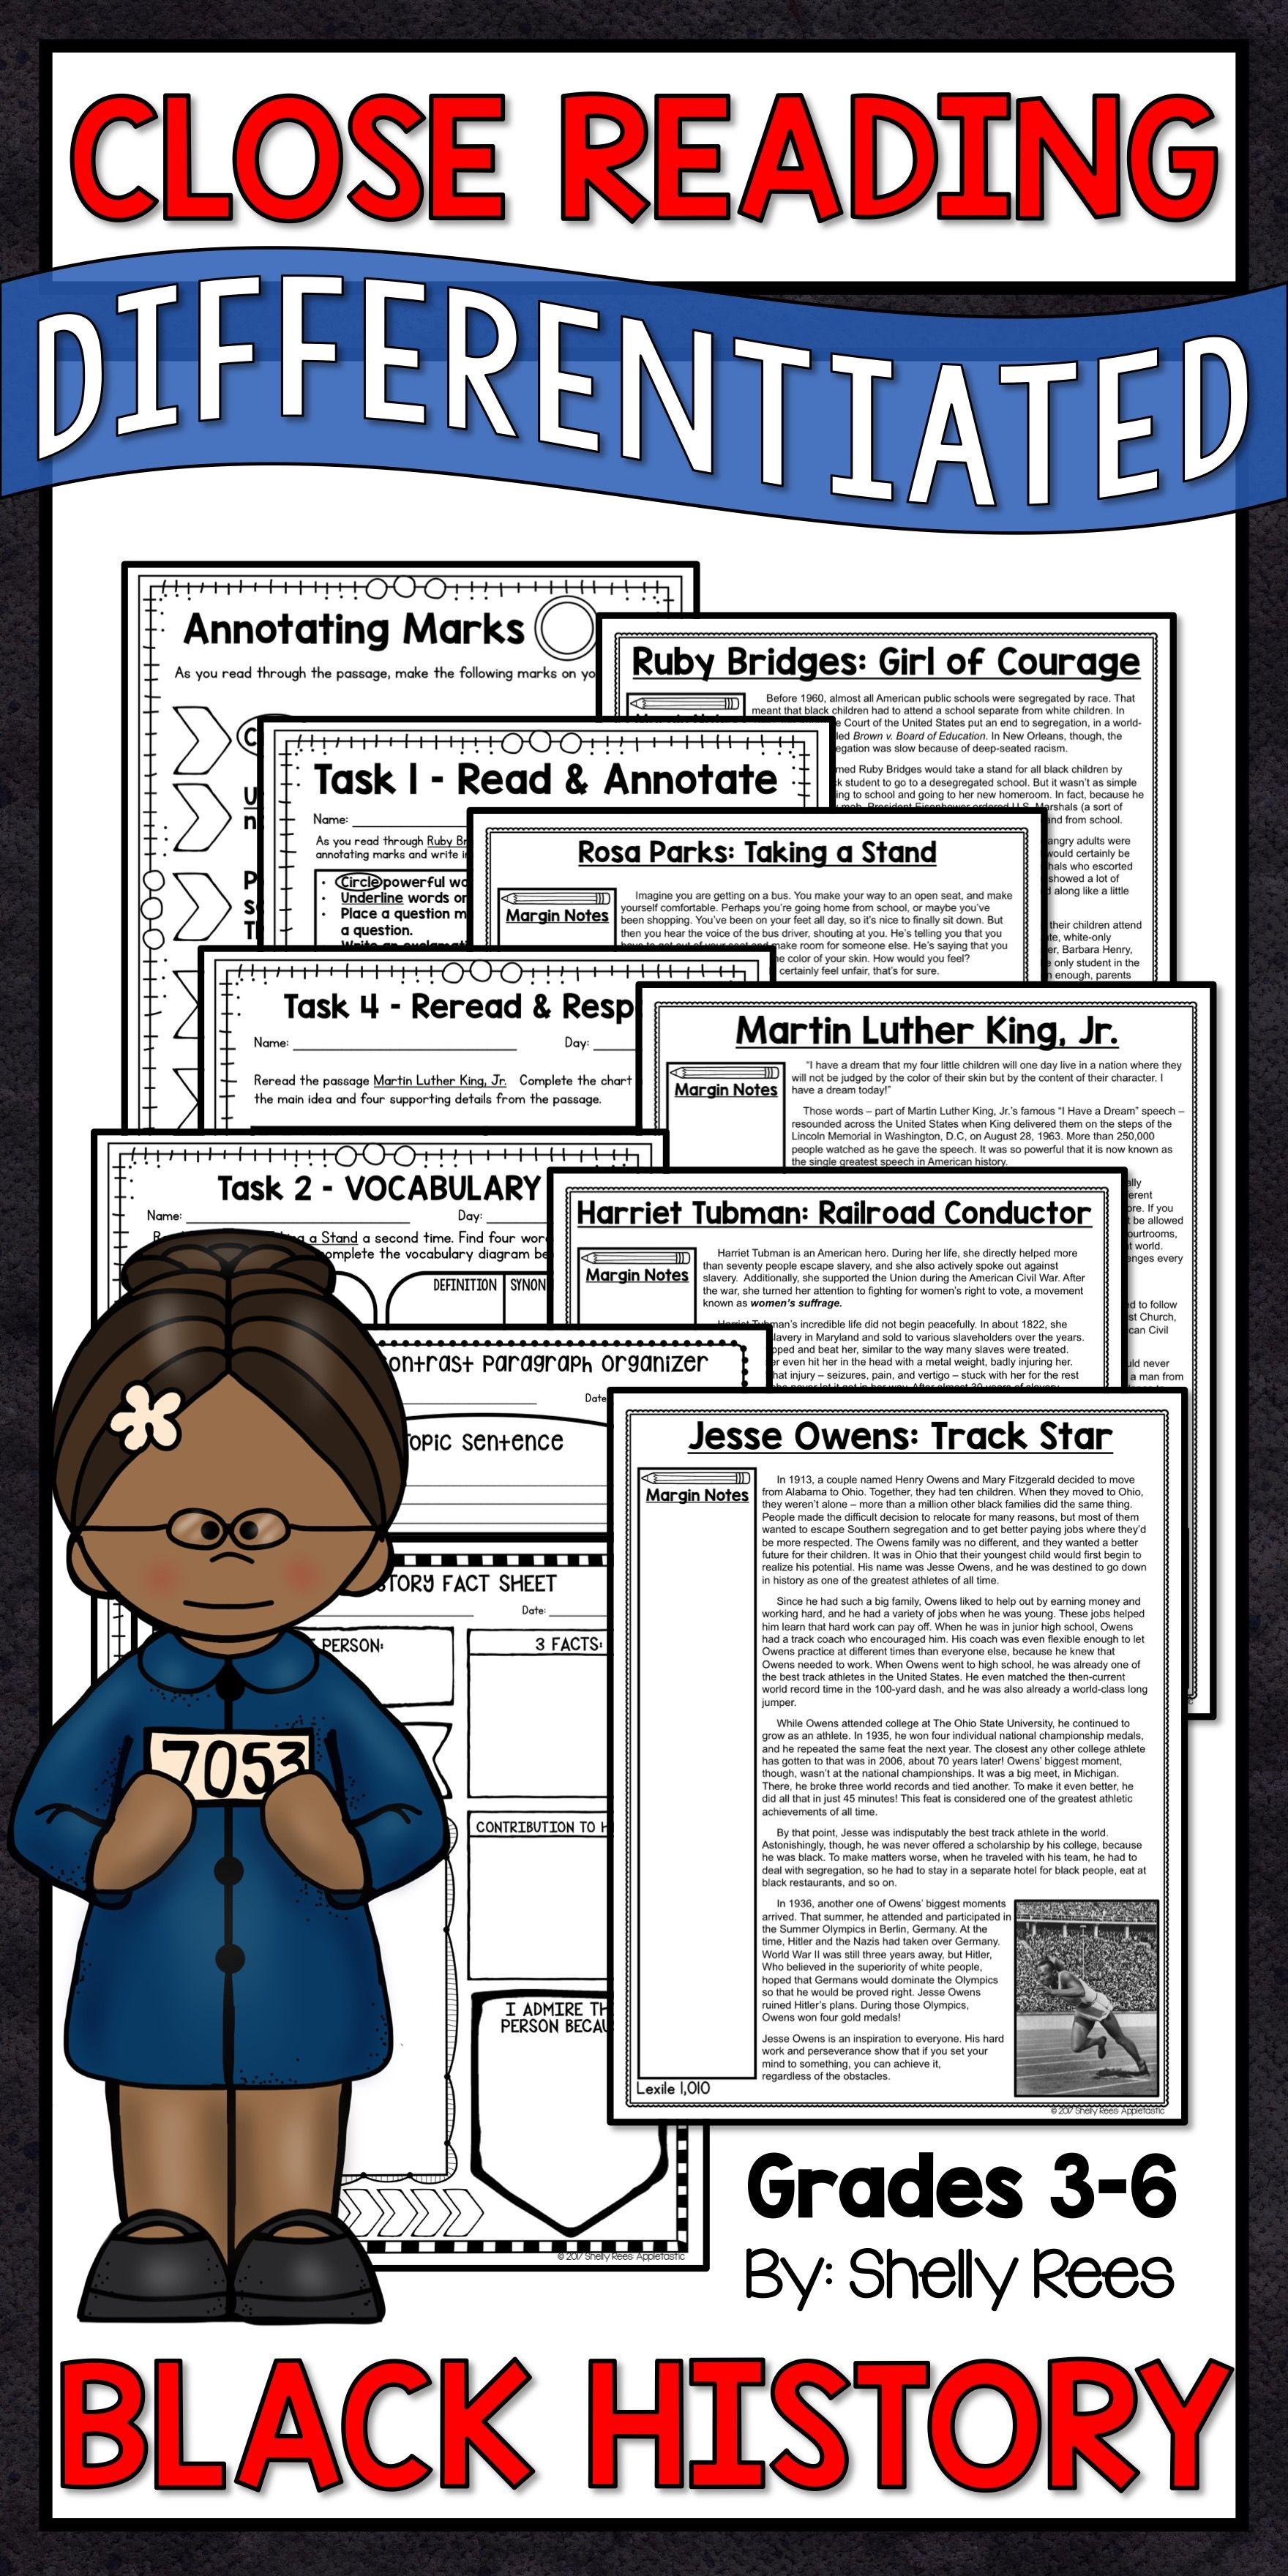 worksheet Jesse Owens Reading Comprehension Worksheets black history month reading passages differentiated about ruby bridges rosa parks martin luther king jr harriet tubman and jesse owens